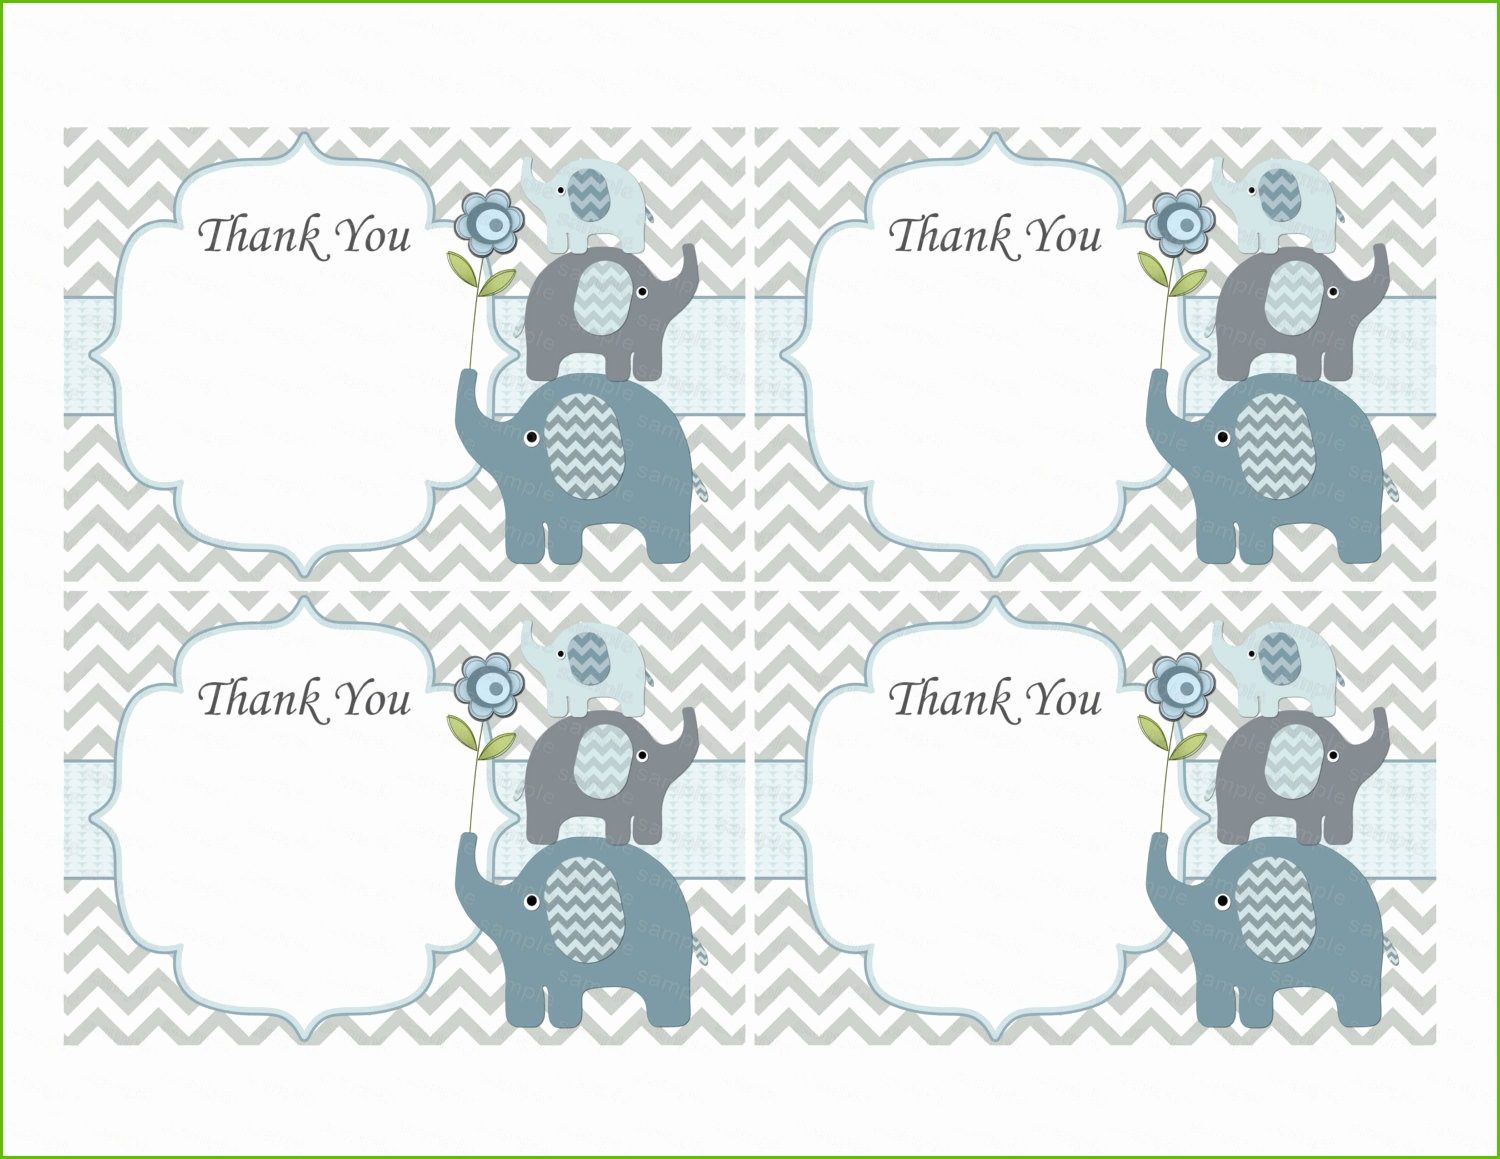 Full Size of Baby Shower:72+ Rousing Baby Shower Thank You Cards Picture Ideas Bebe Baby Shower With Baby Shower Party Plus My Baby Shower Together With Cosas De Baby Shower As Well As A Baby Shower